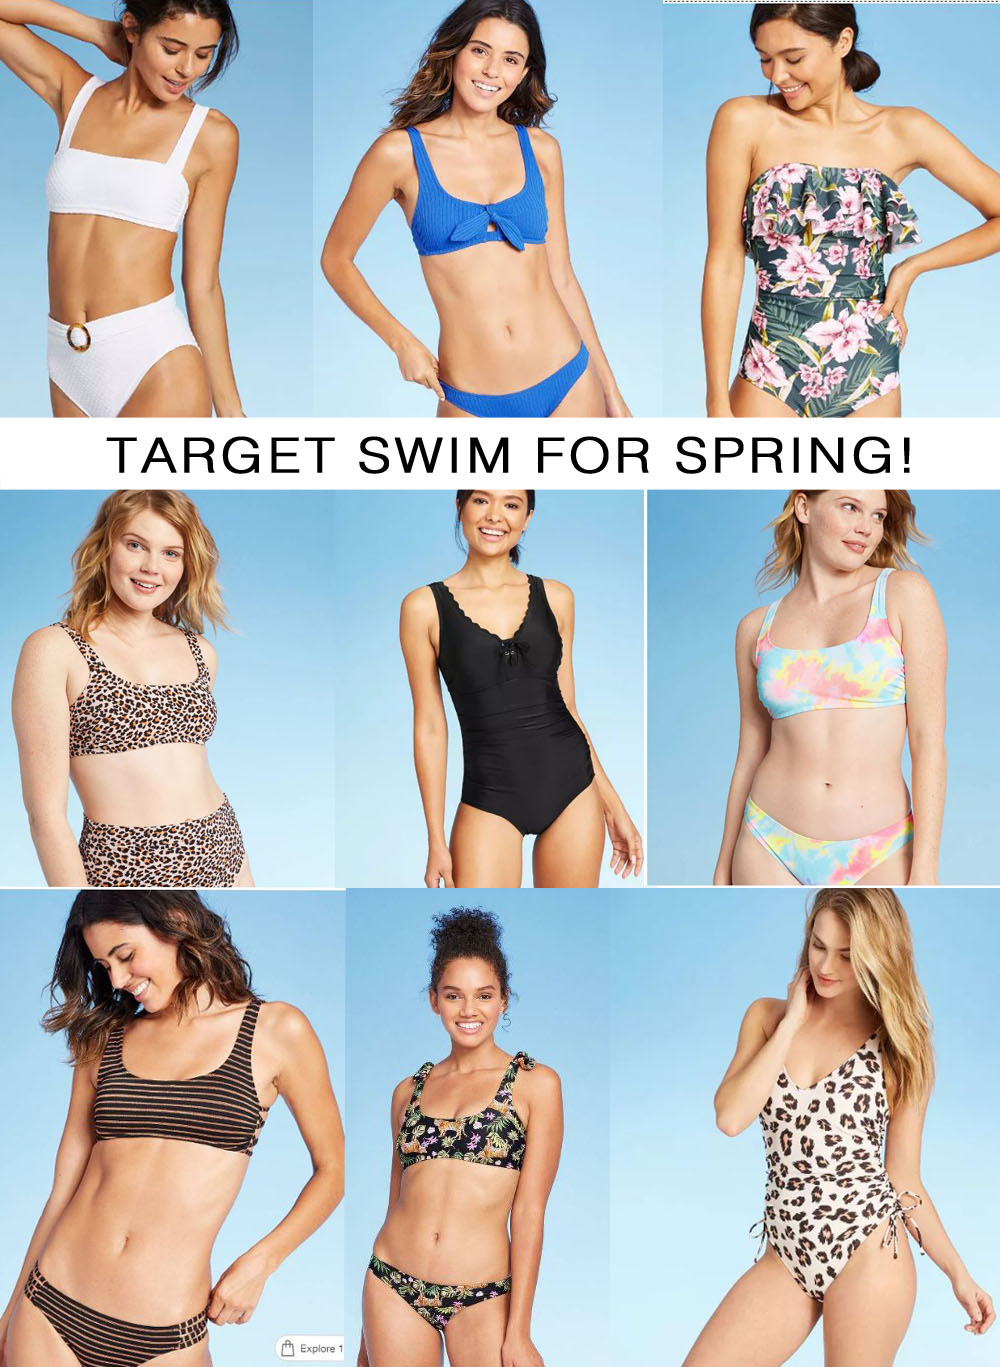 Target Swimsuits on Sale by popular Florida life and style blog, The Modern Savvy: collage image of various Target swimsuits that are currently on sale.